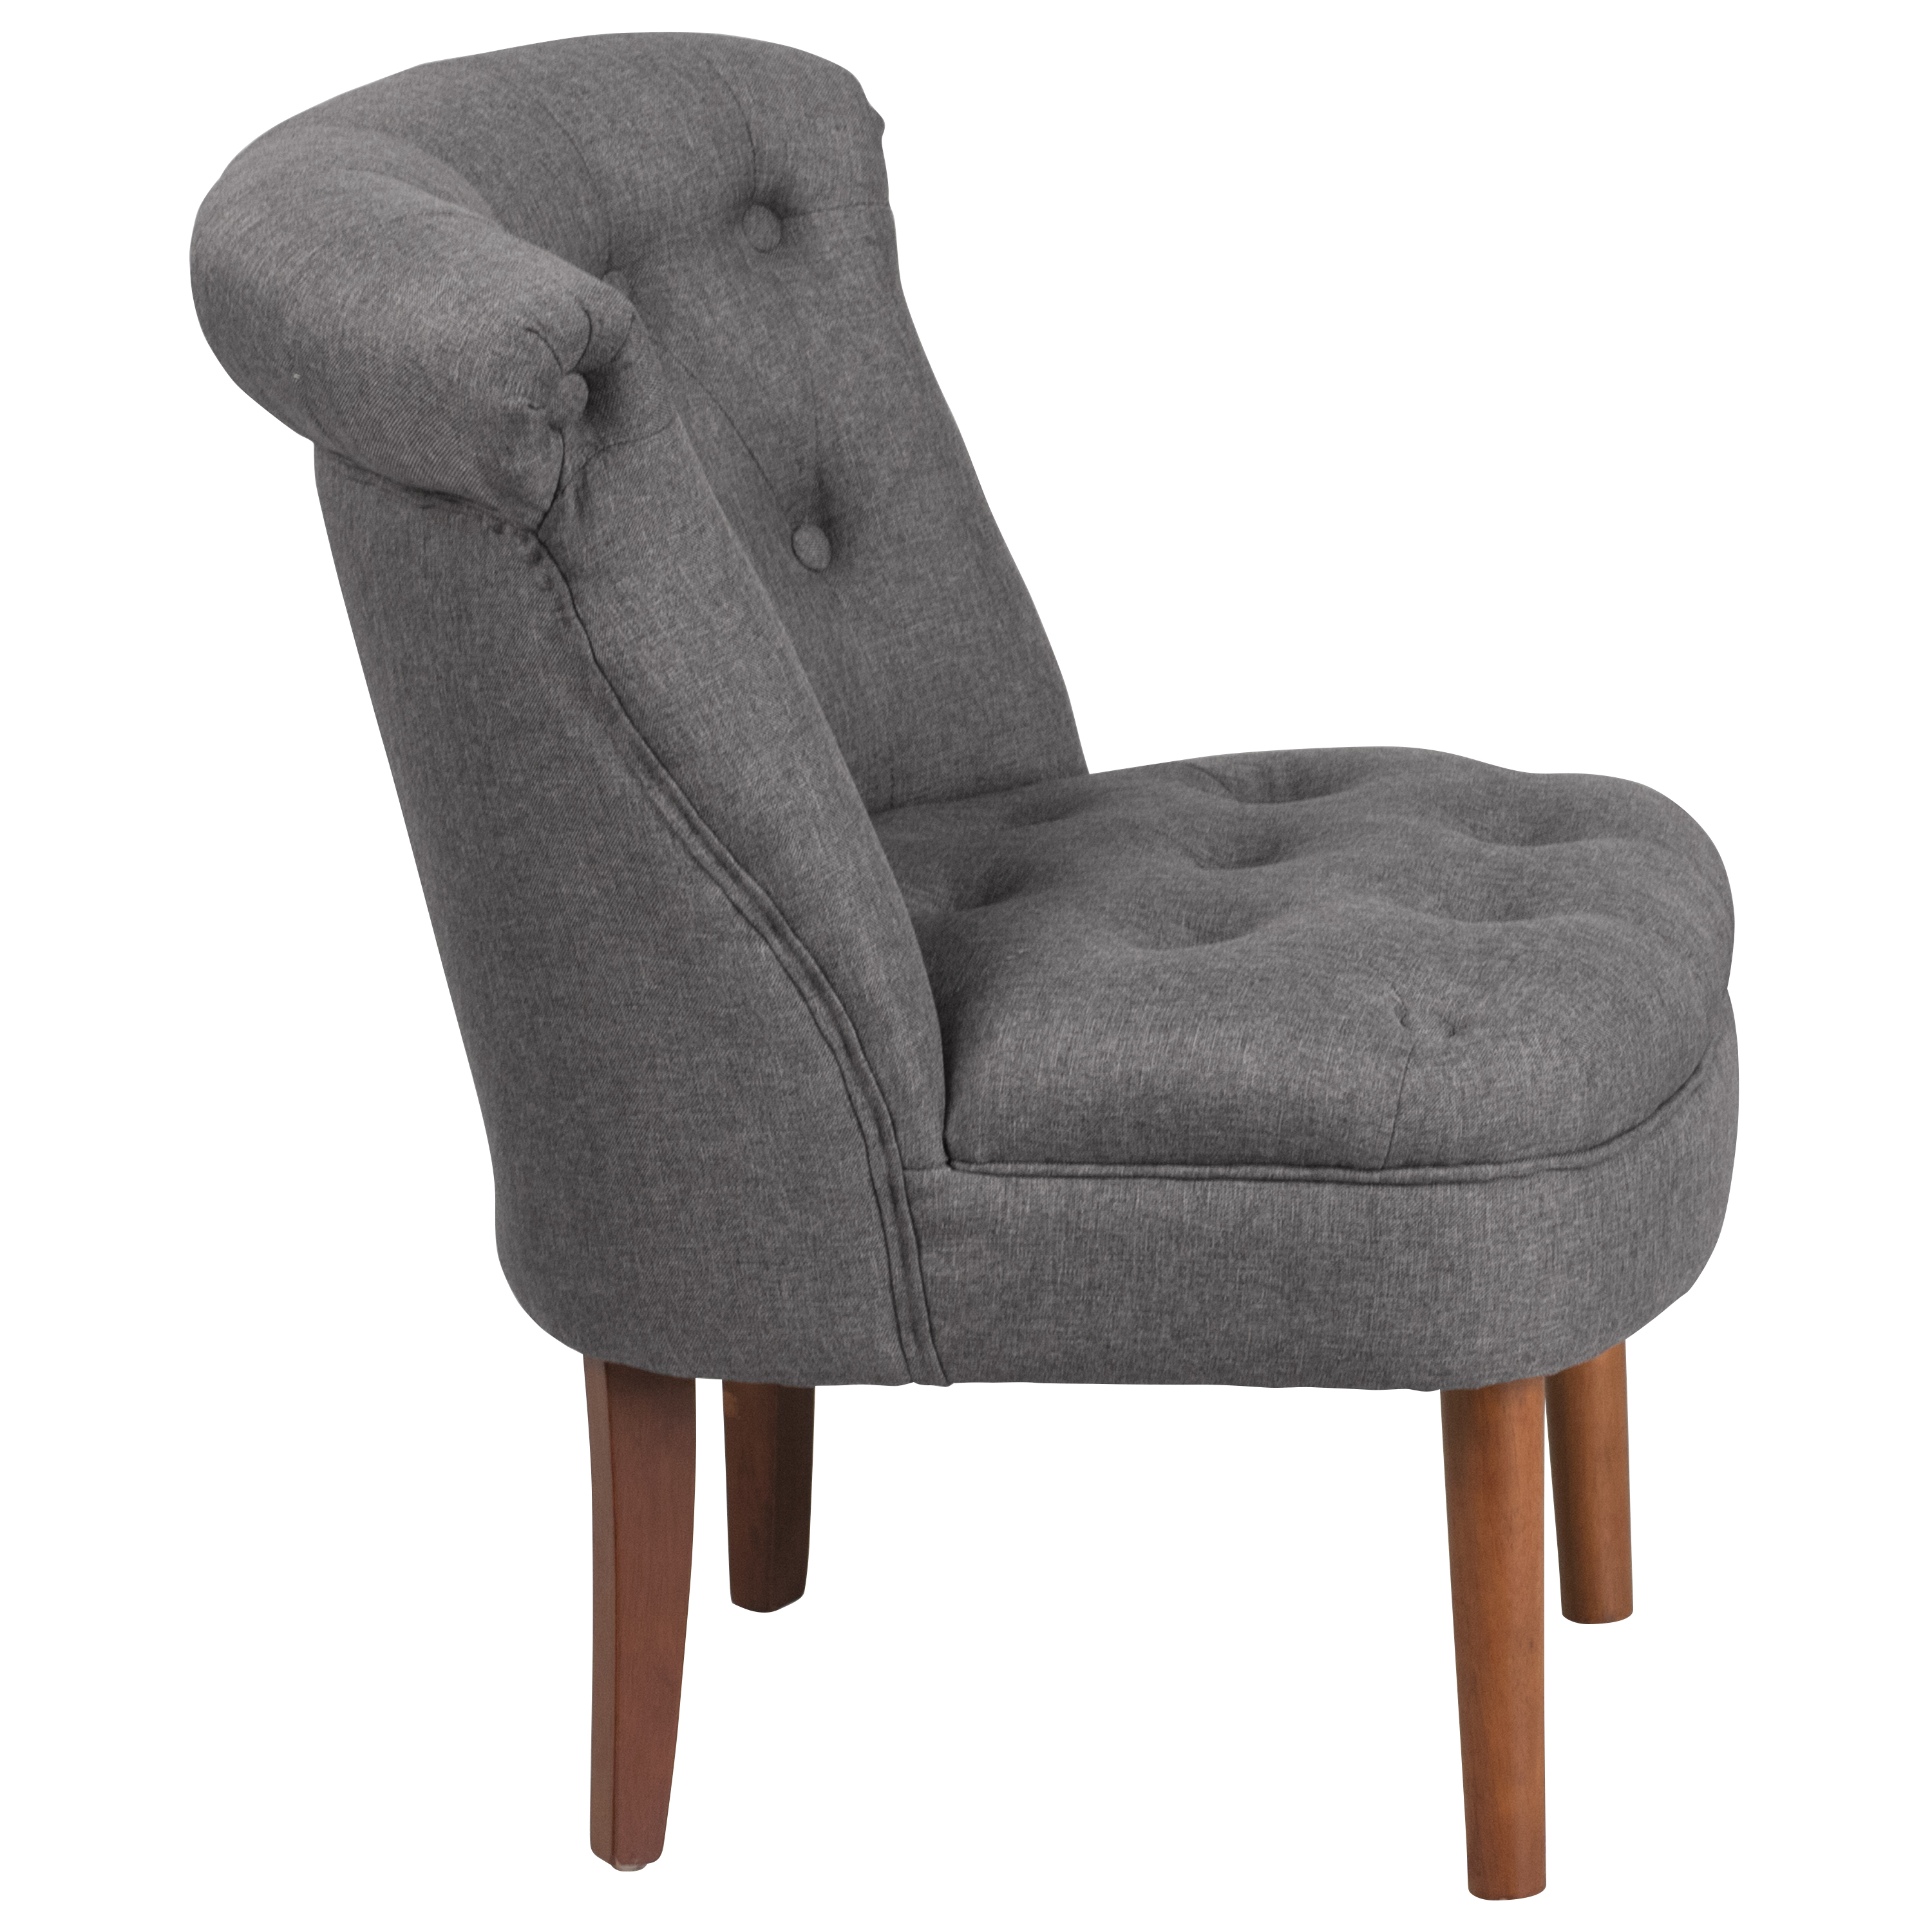 Ebay Accent Chairs: Rolled Back Tufted Accent Chair